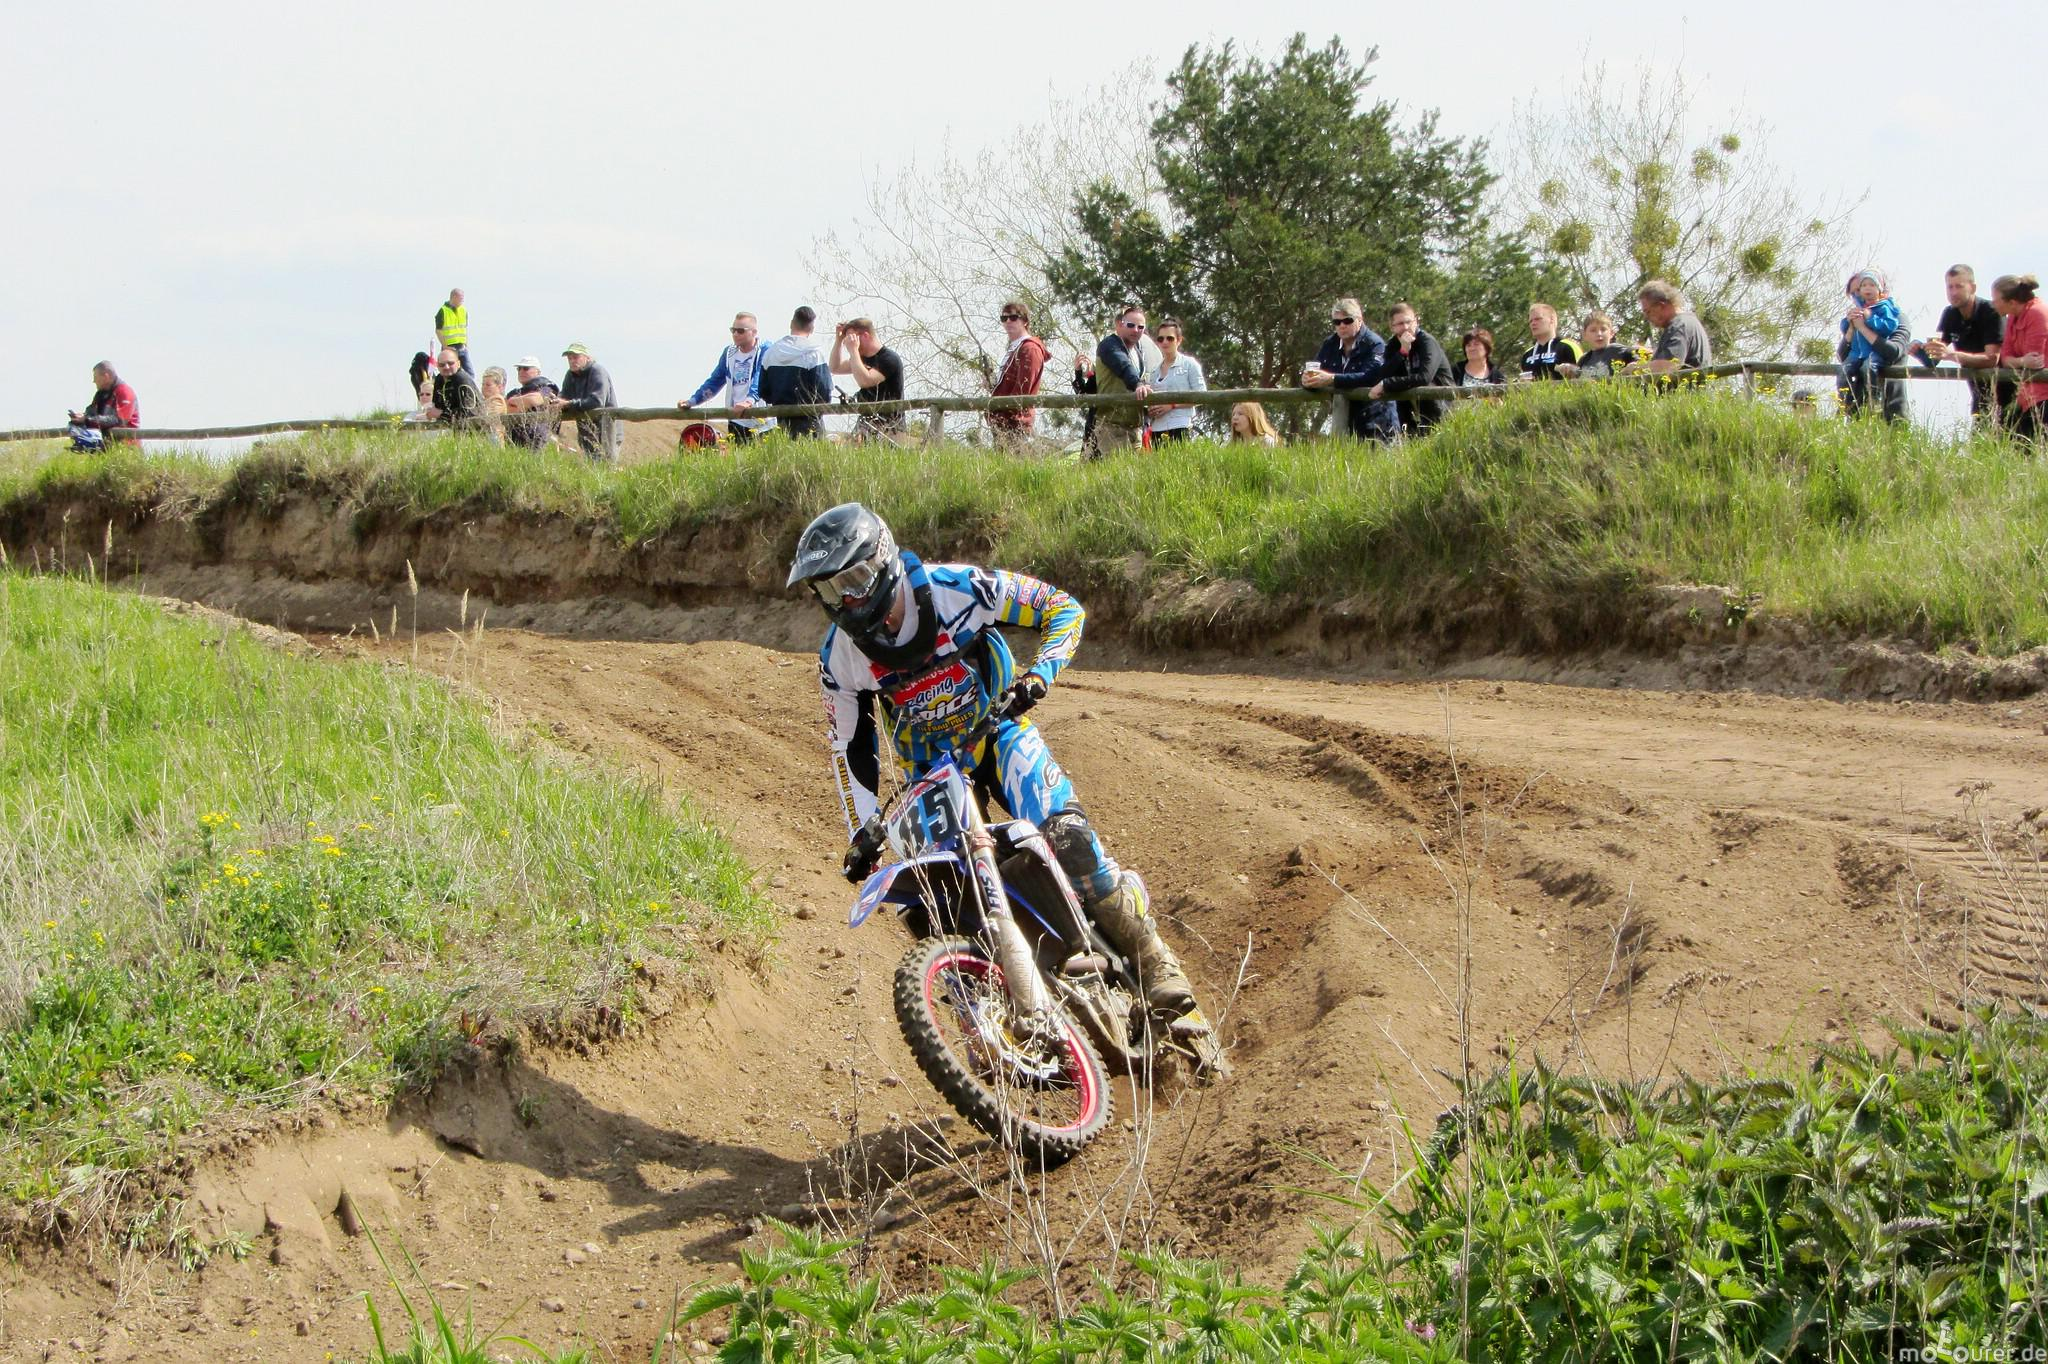 Motocross in Wriezen